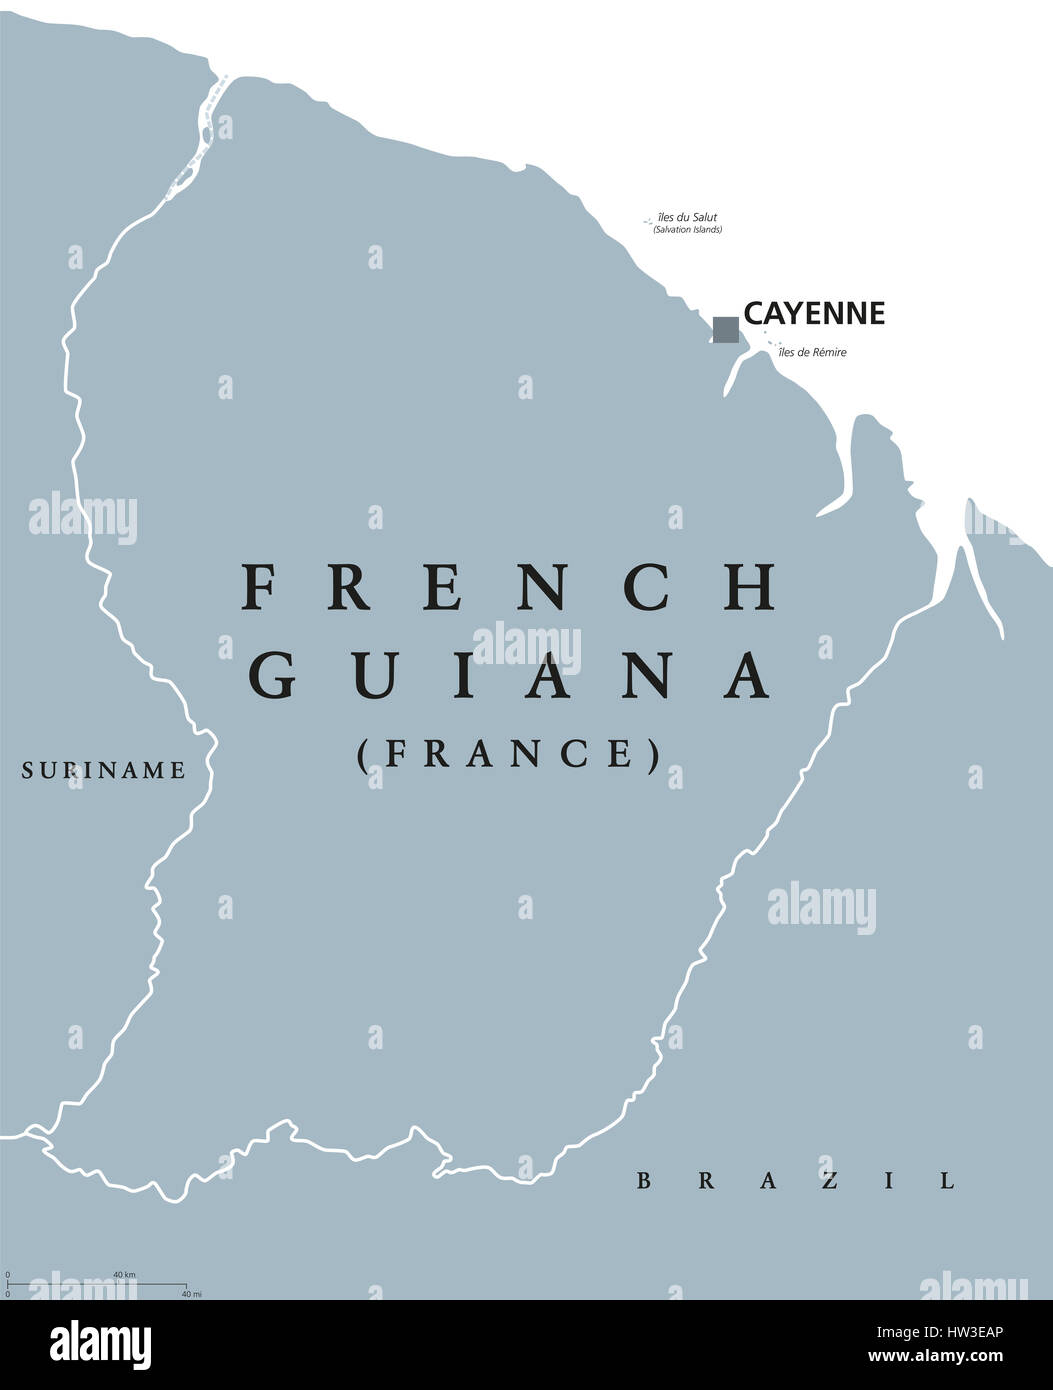 French Guiana Political Map With Capital Cayenne And Borders Stock - South america french guiana map